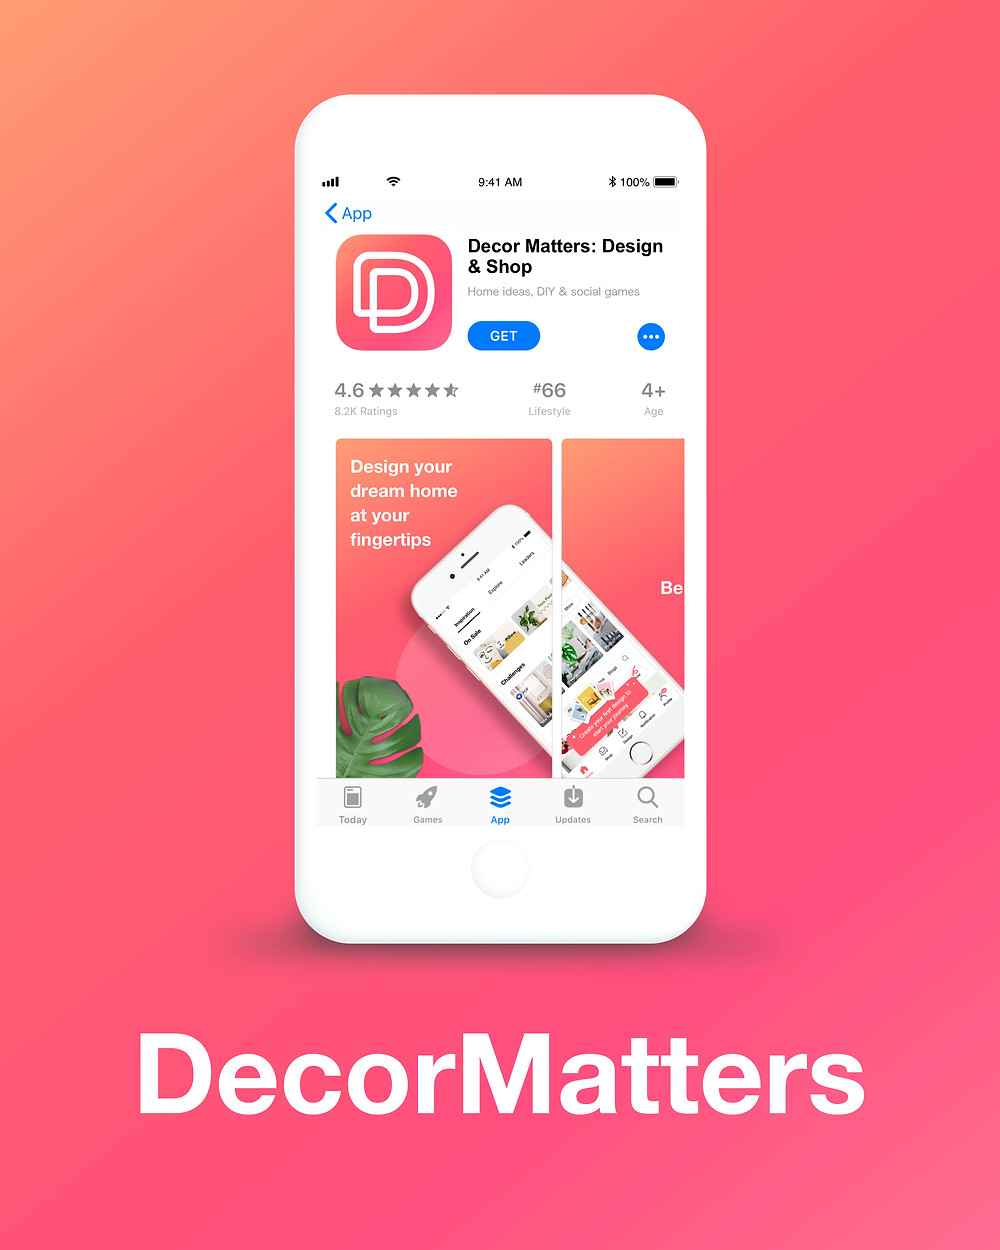 An image of the DecorMatters app in the Apple App Store on a gradient background of various pink and orange hues.